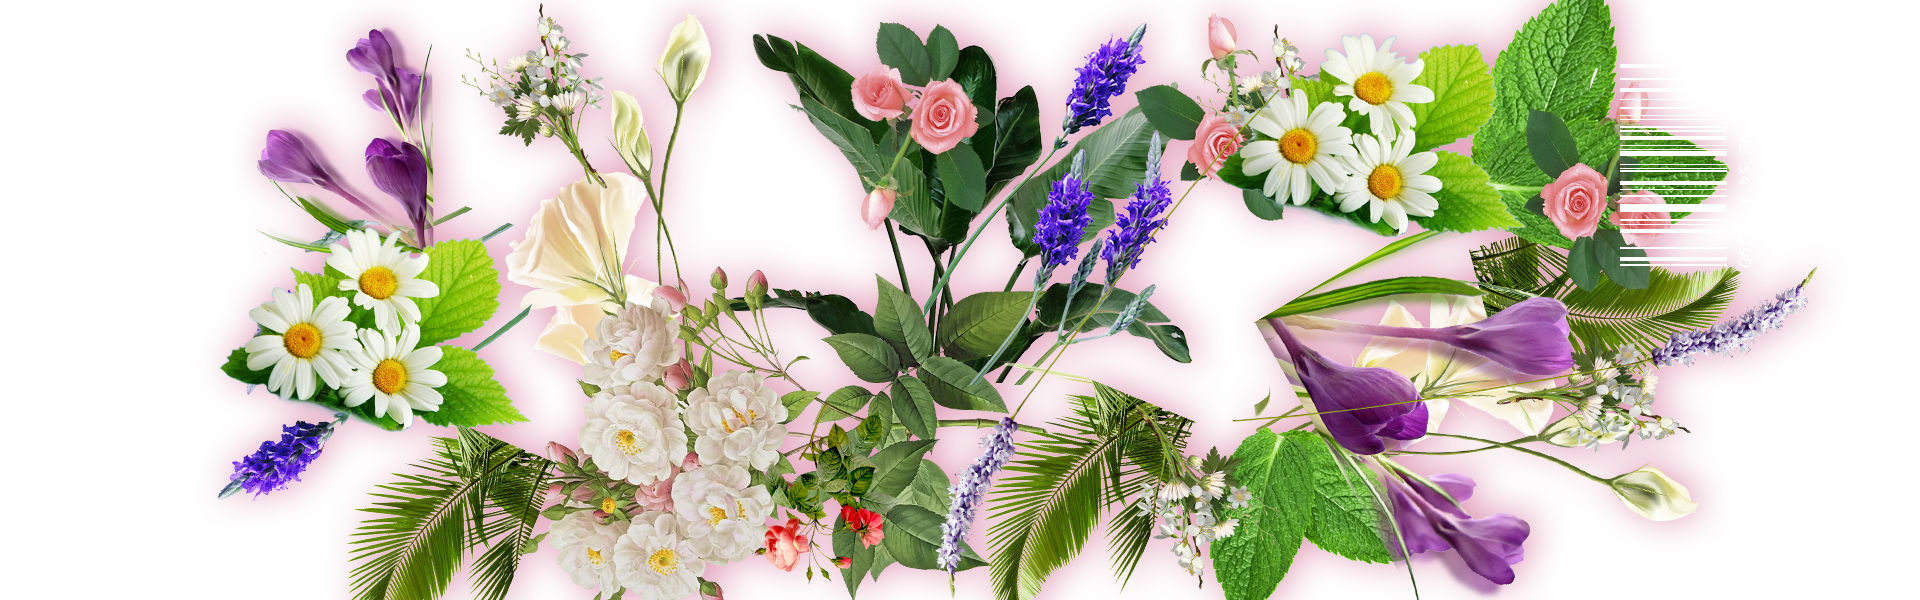 Flowers free photos stock Flower Leaf Floral design - Free to pull flowers 1920*600 transprent ... stock